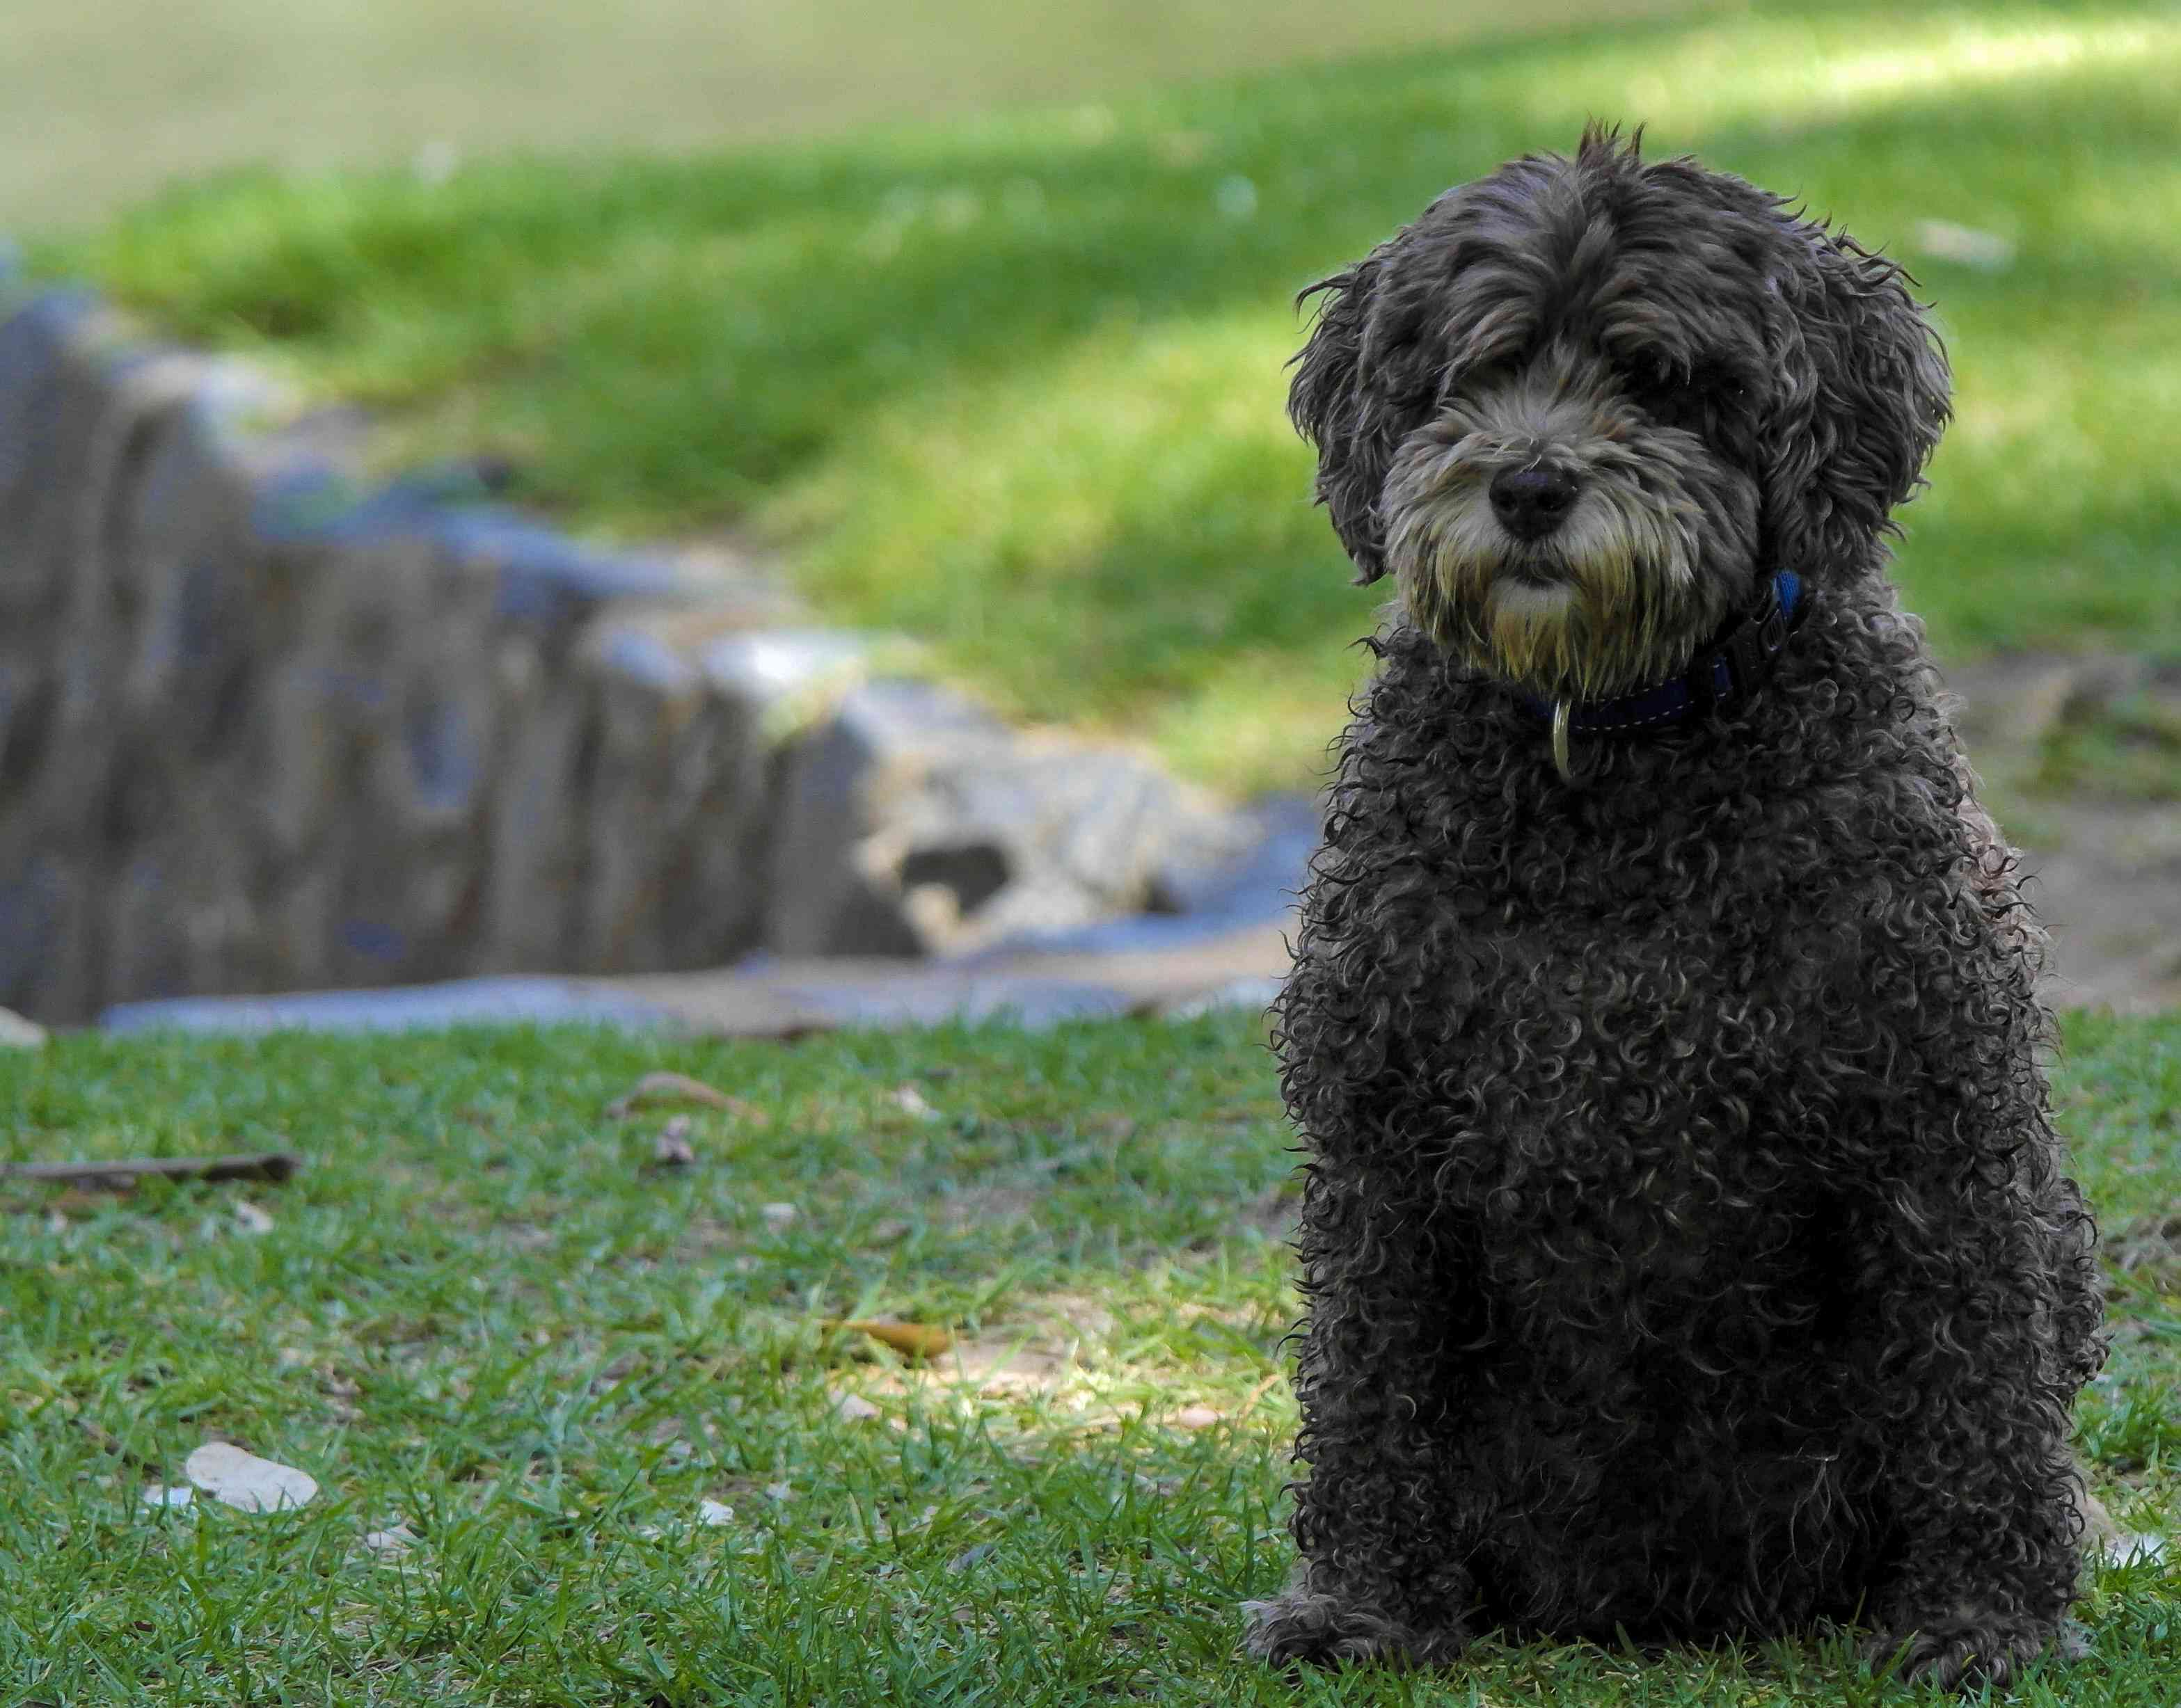 black Spanish water dog standing on grass near a rocky wall